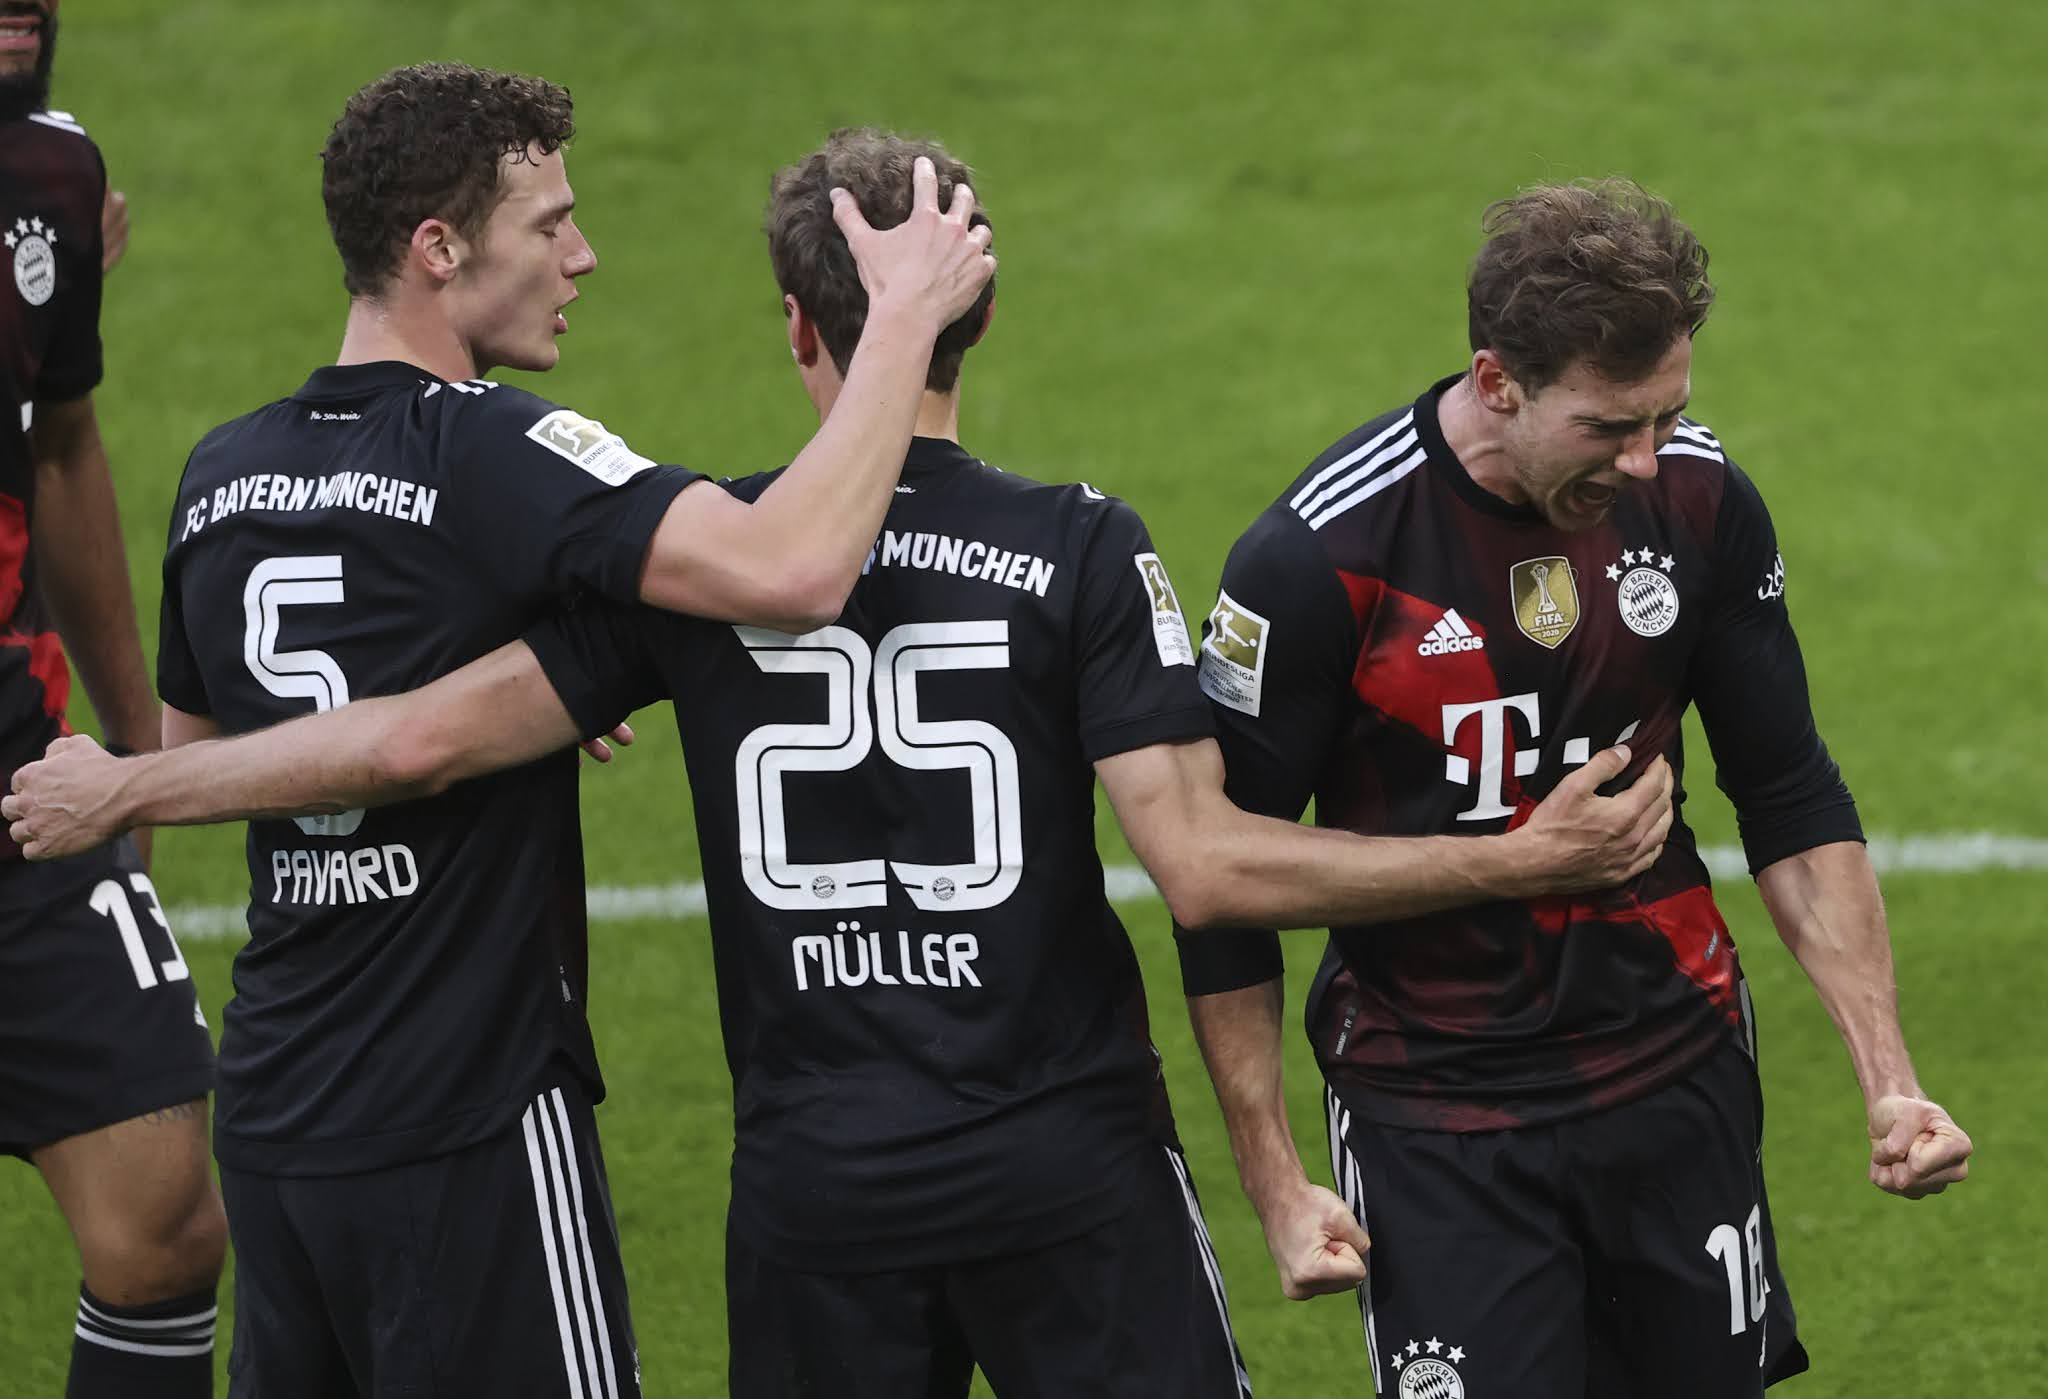 Bayern Munich will seek to maintain their lead at the top of the standings